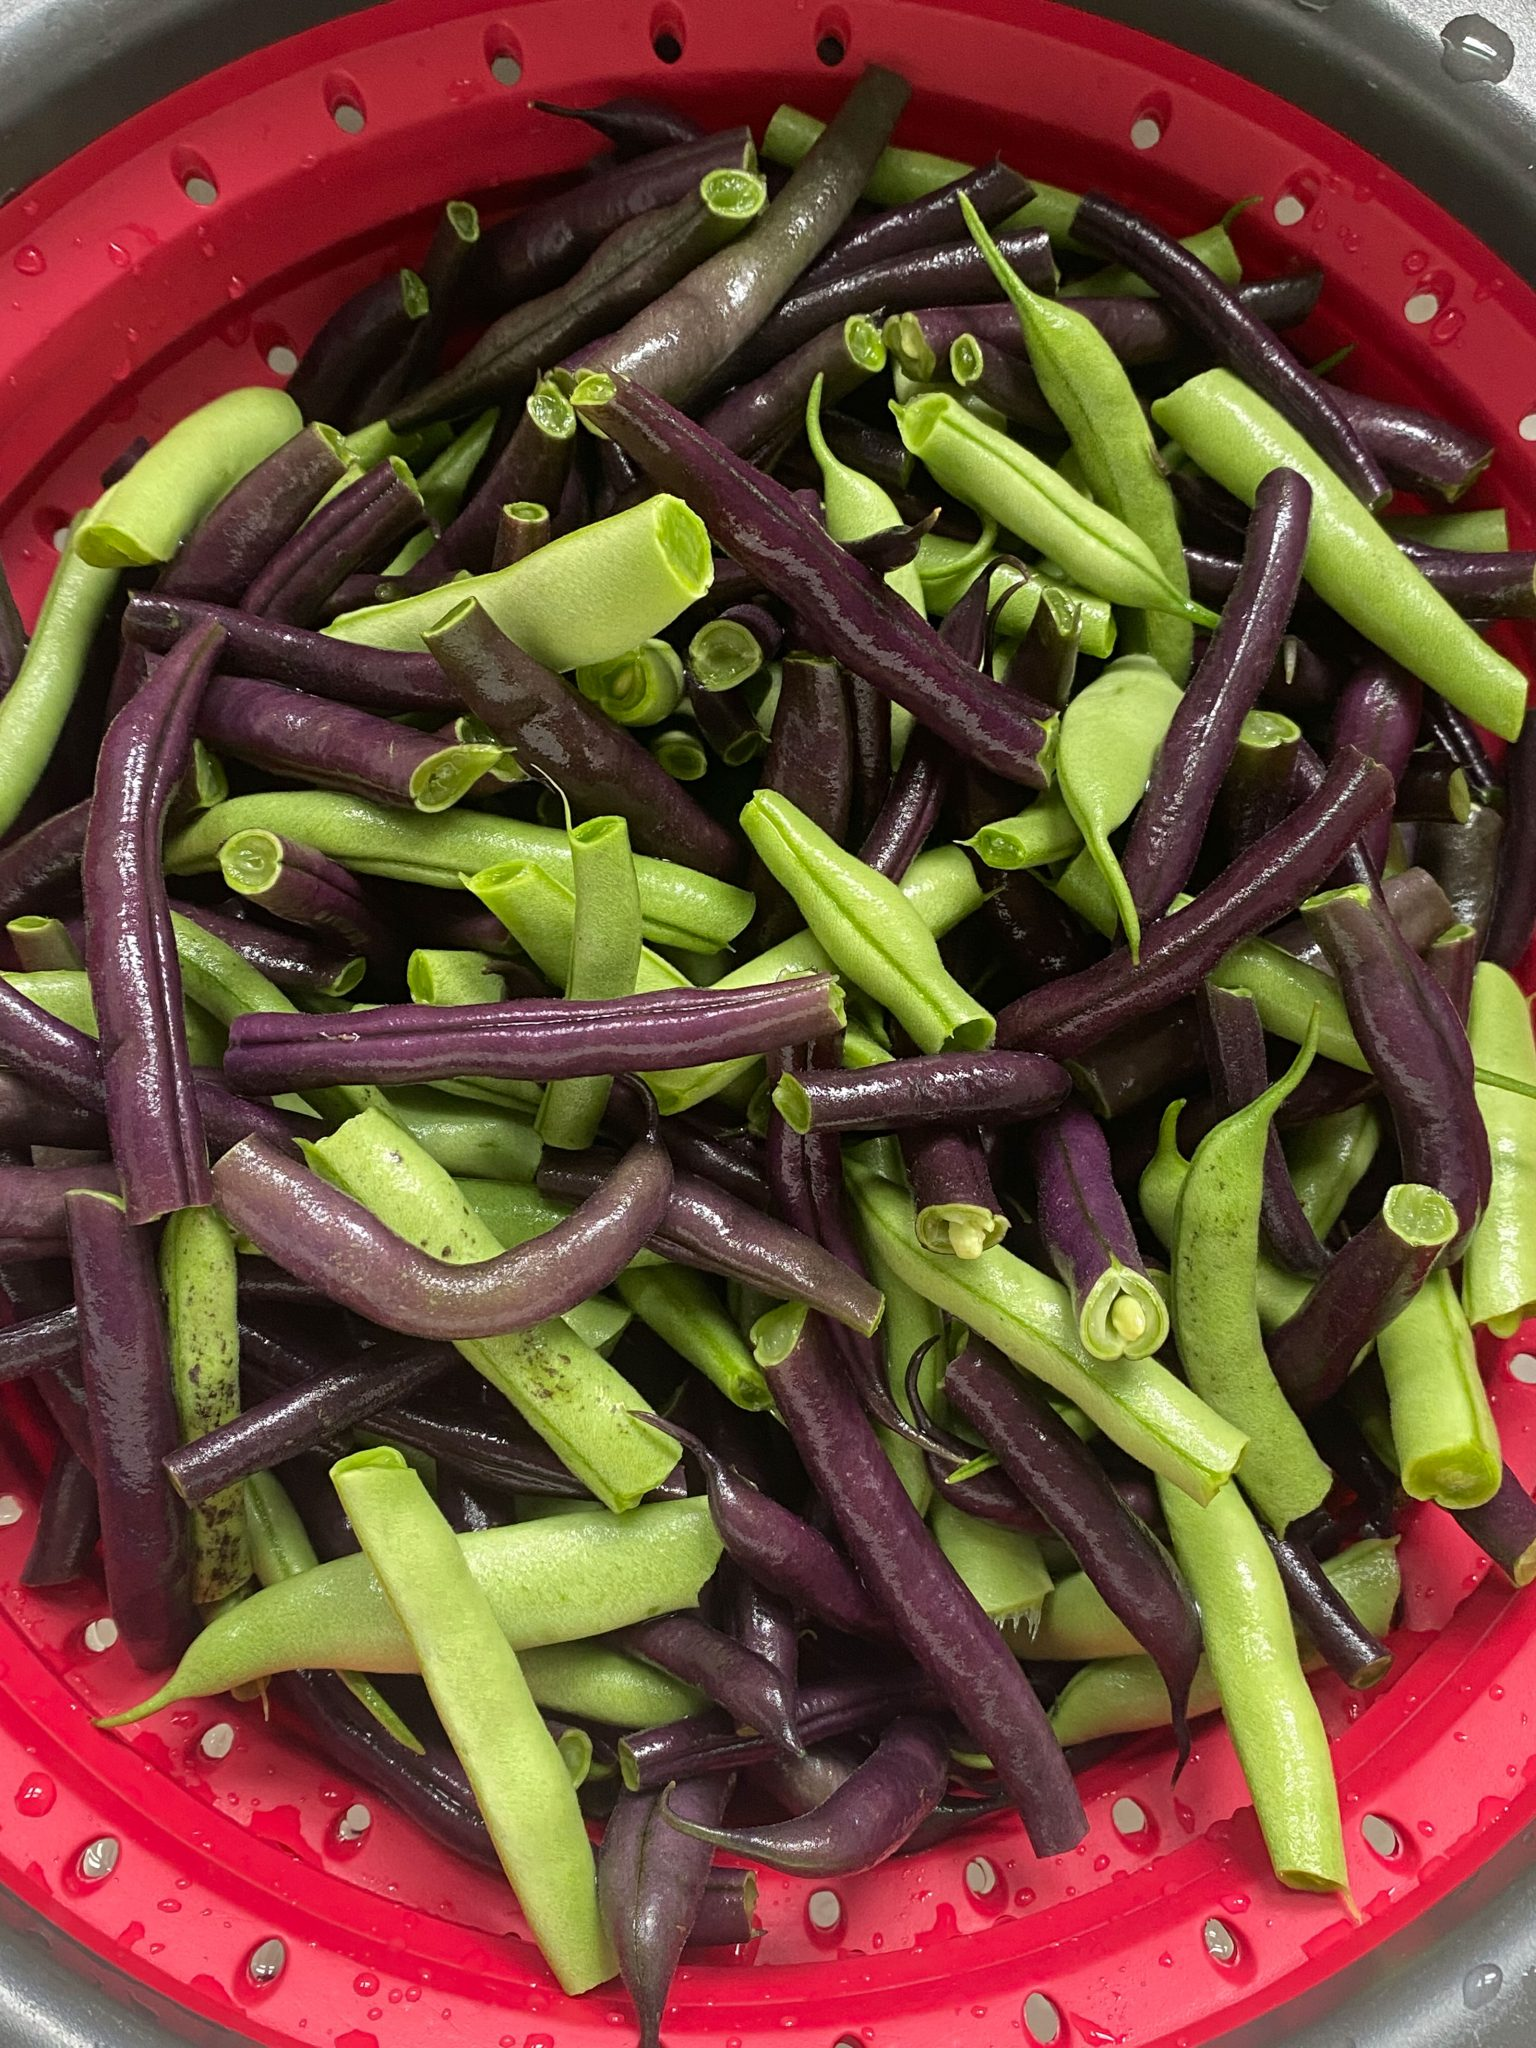 Fresh green and purple beans.